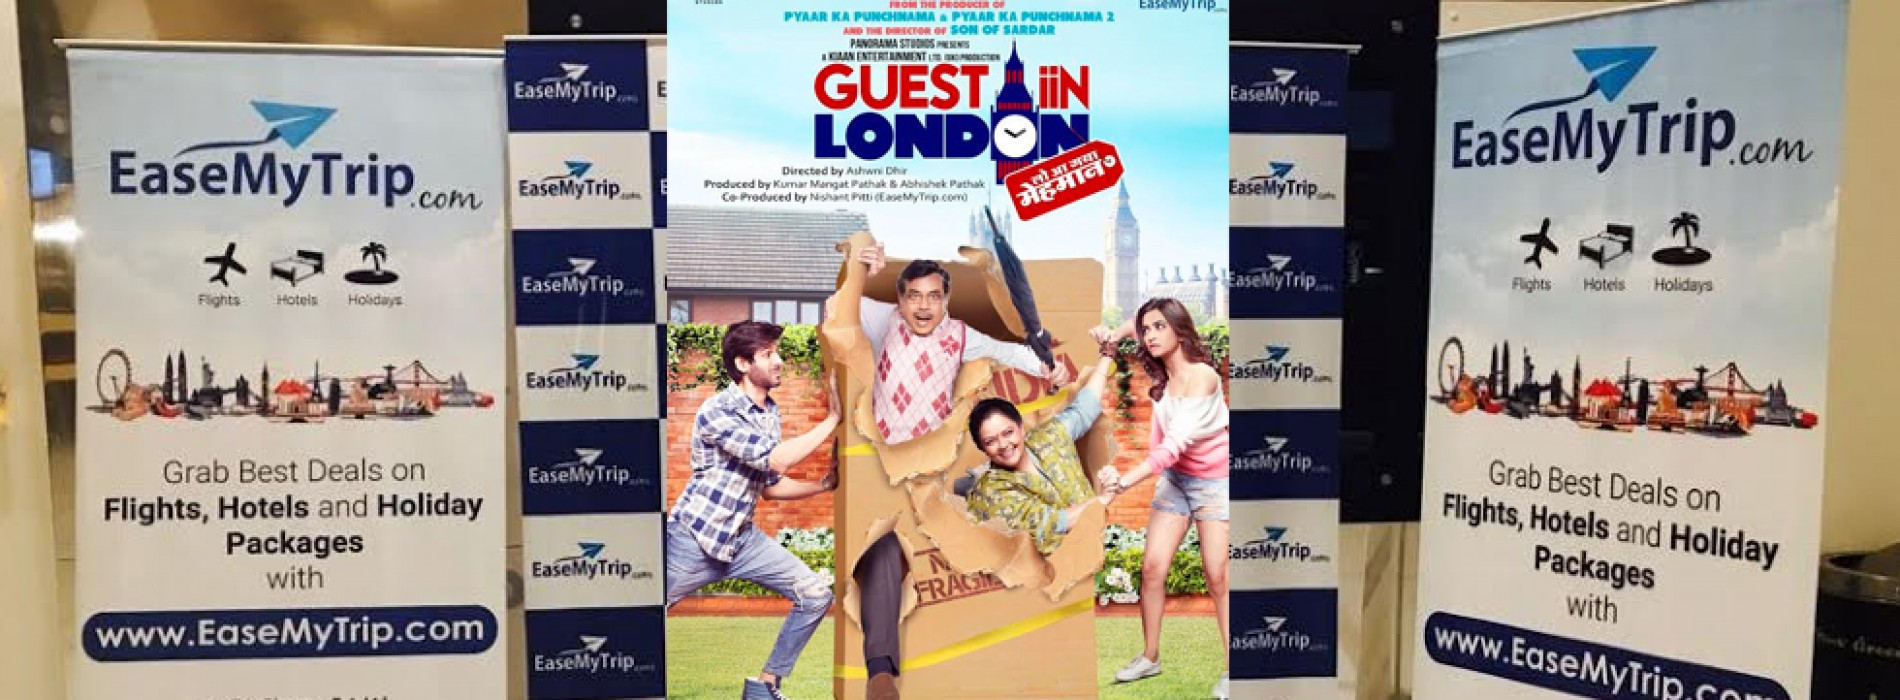 Special screening of the Film 'Guest Iin London' by EaseMyTrip